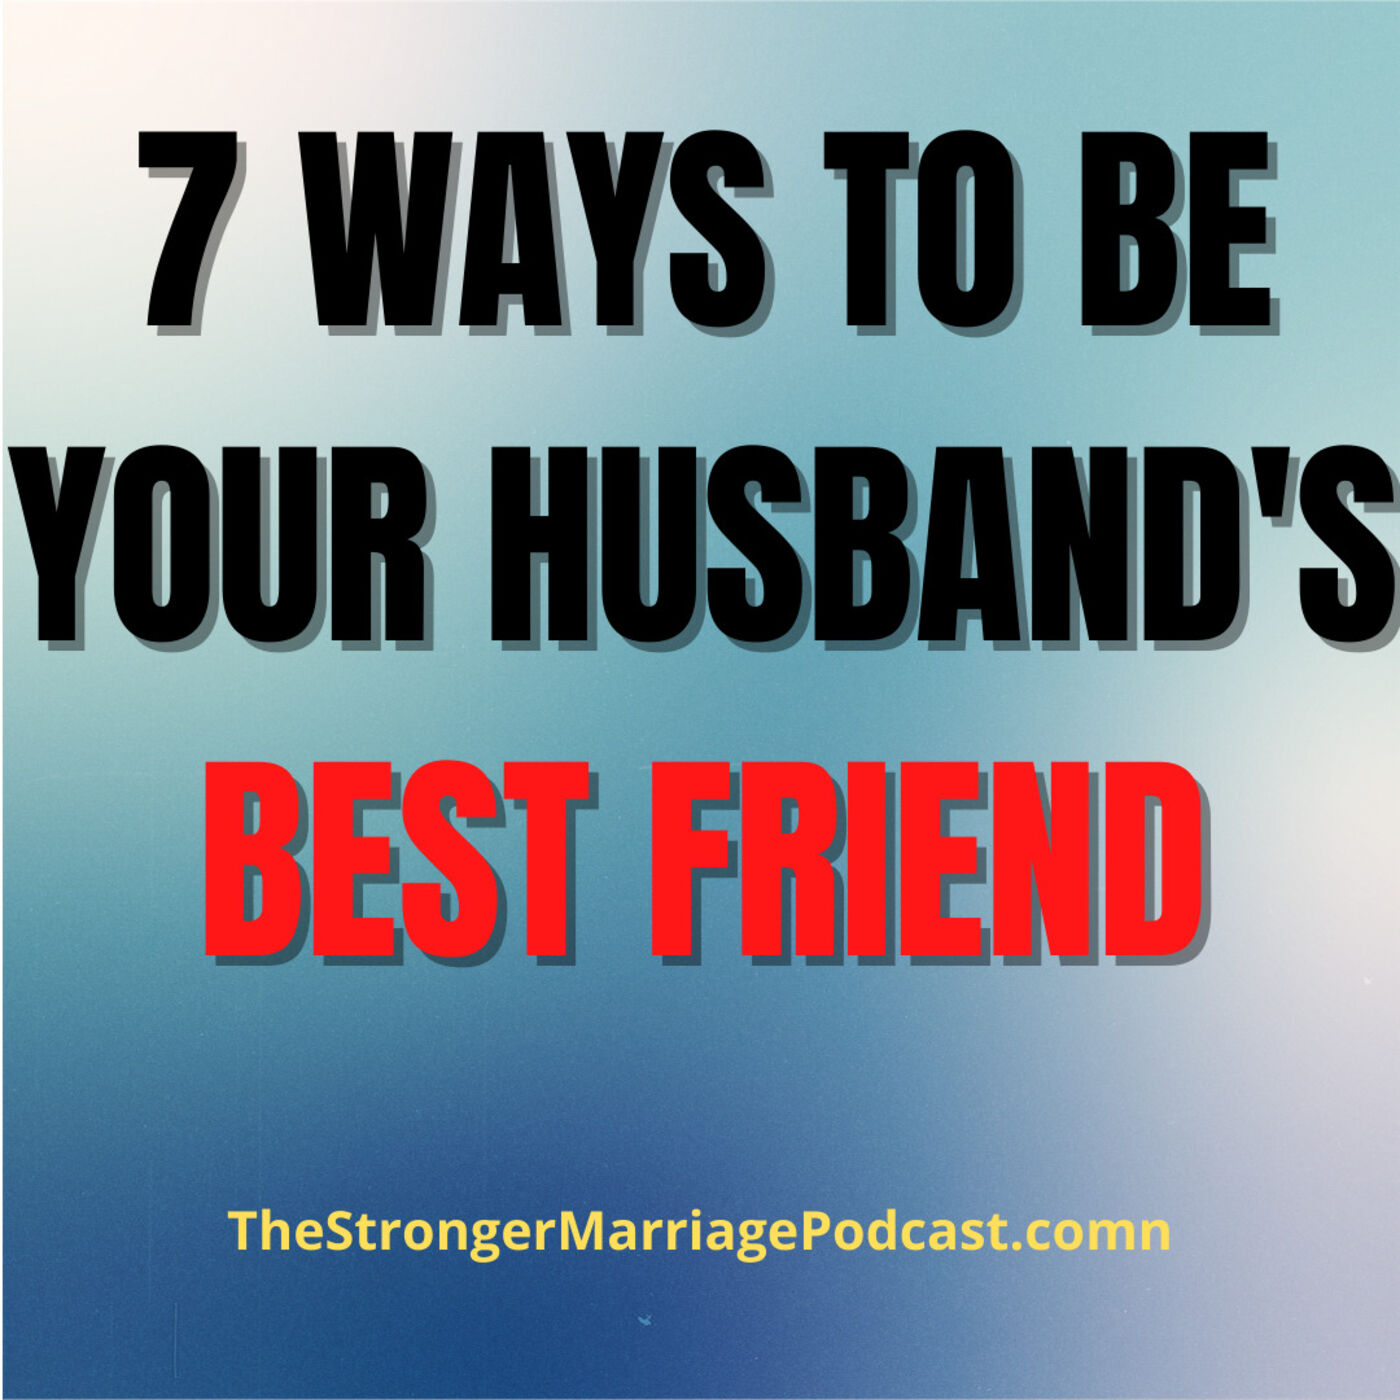 7 Ways To Be Your HUSBAND'S Best Friend